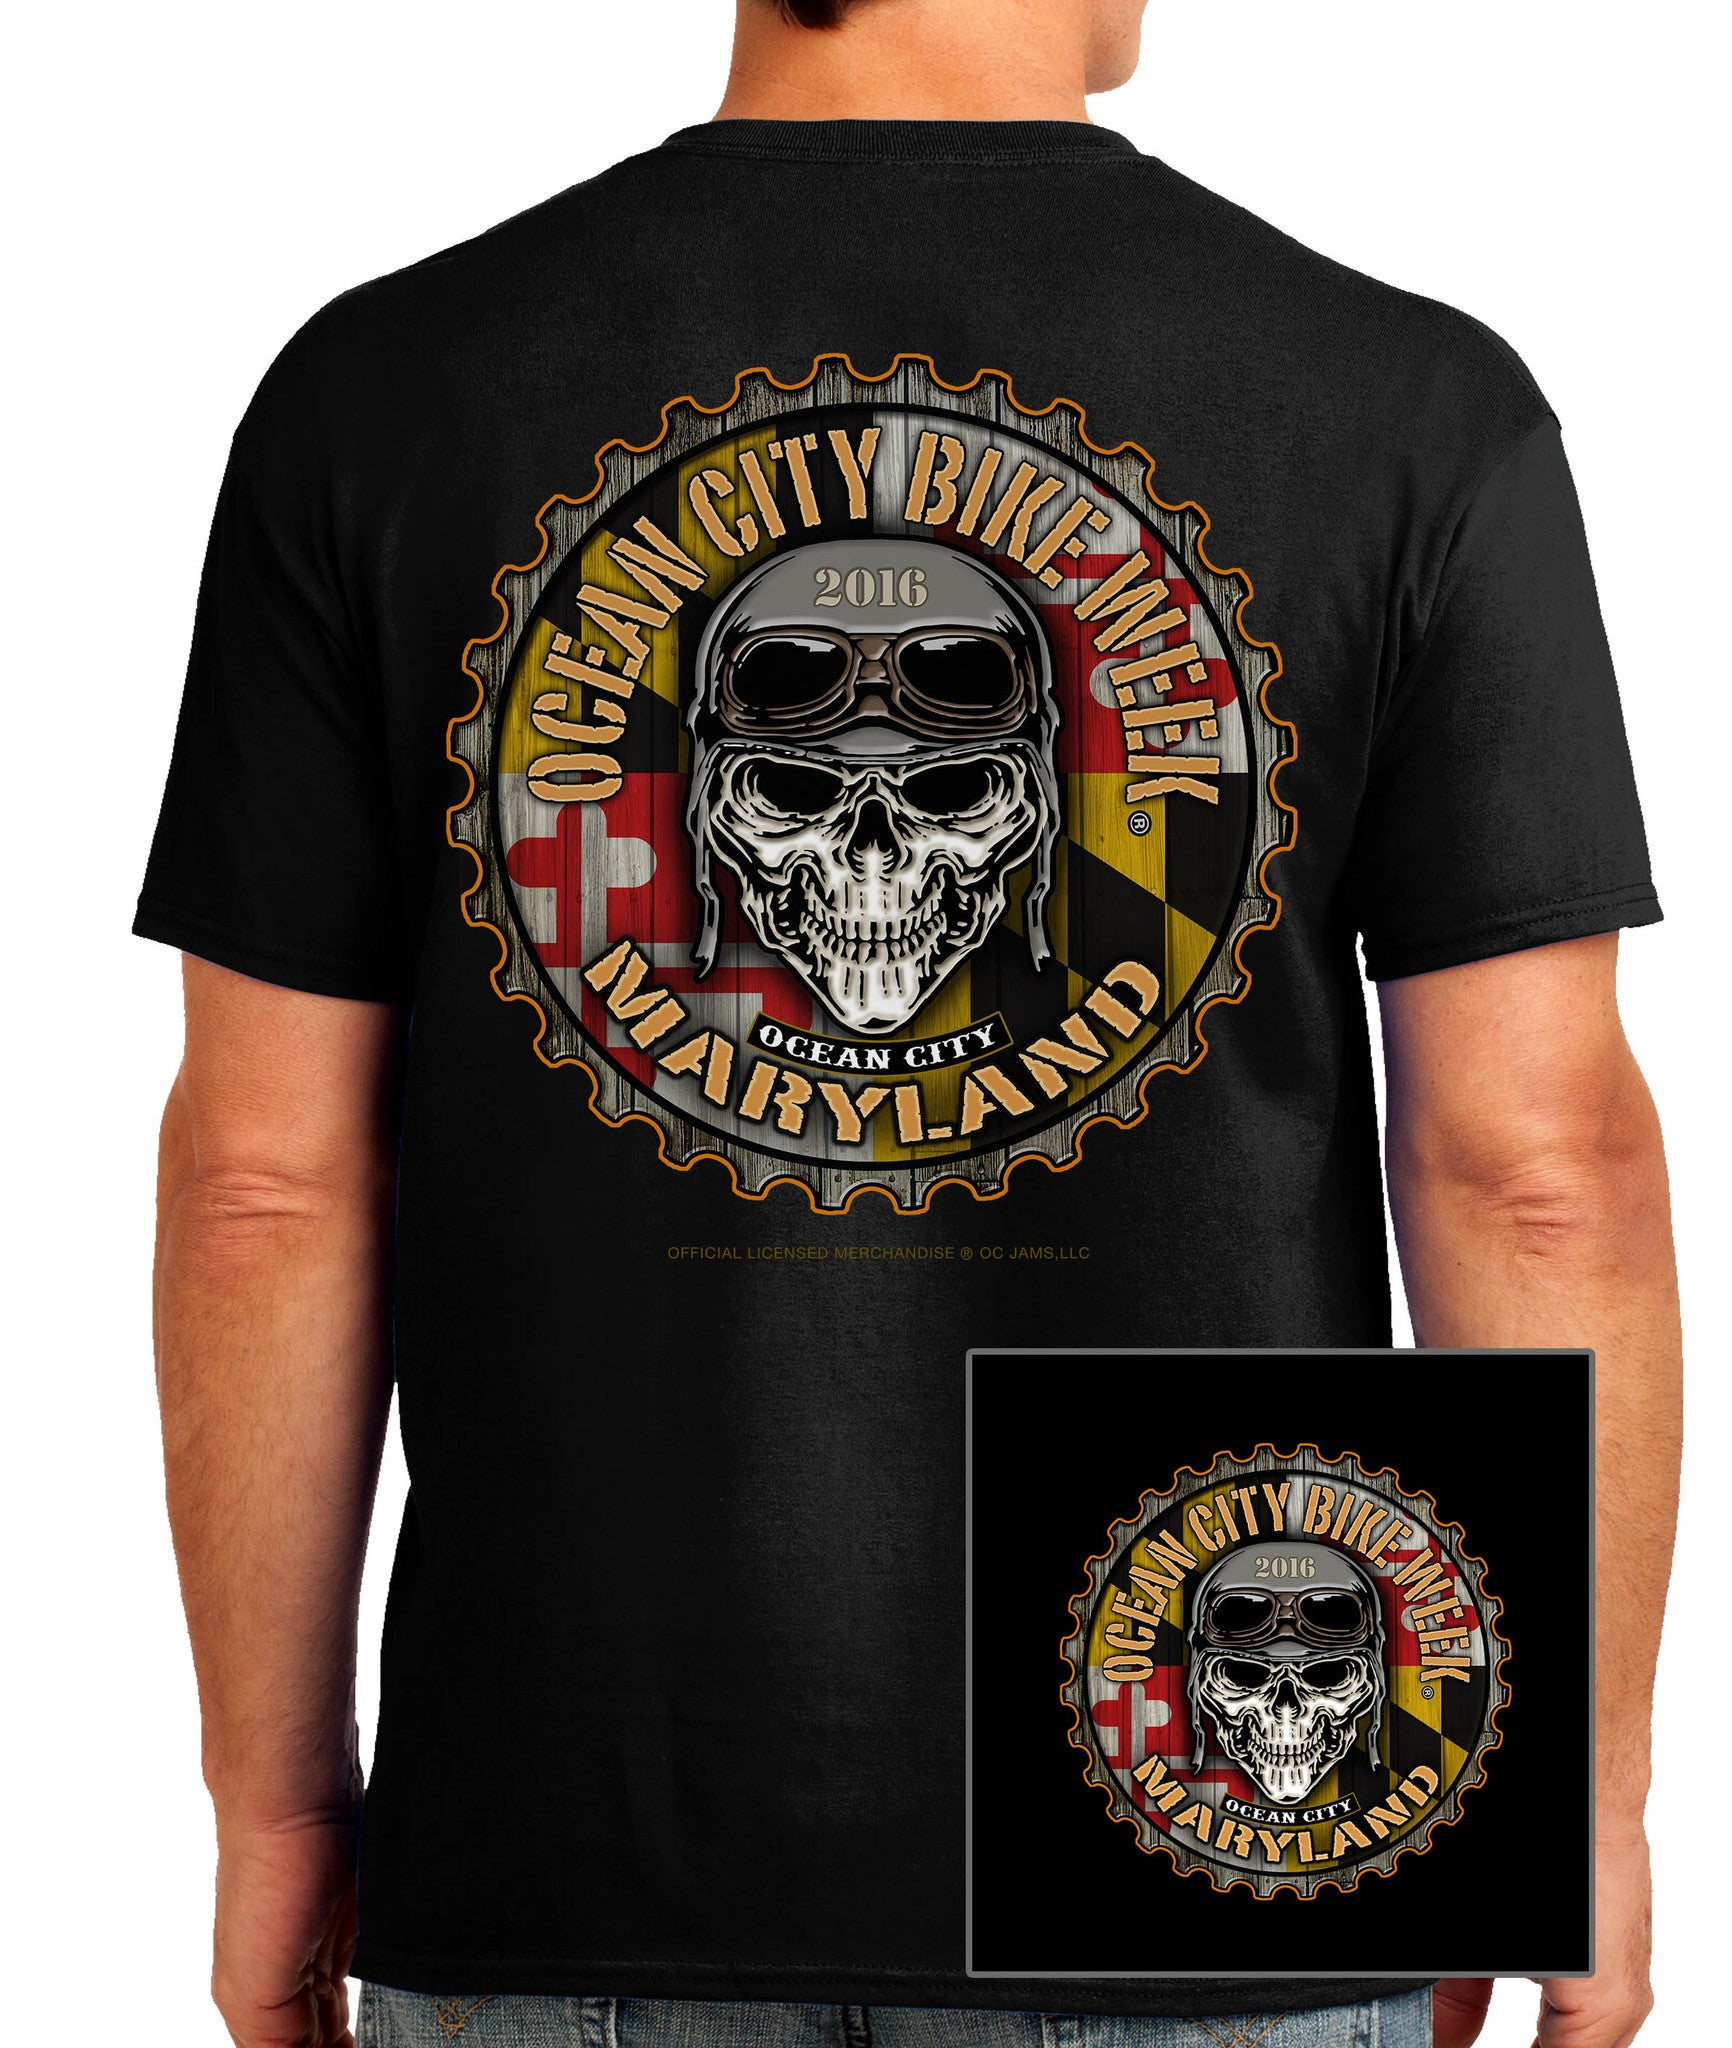 2016 OC BikeFest Maryland Flag Black T-shirt